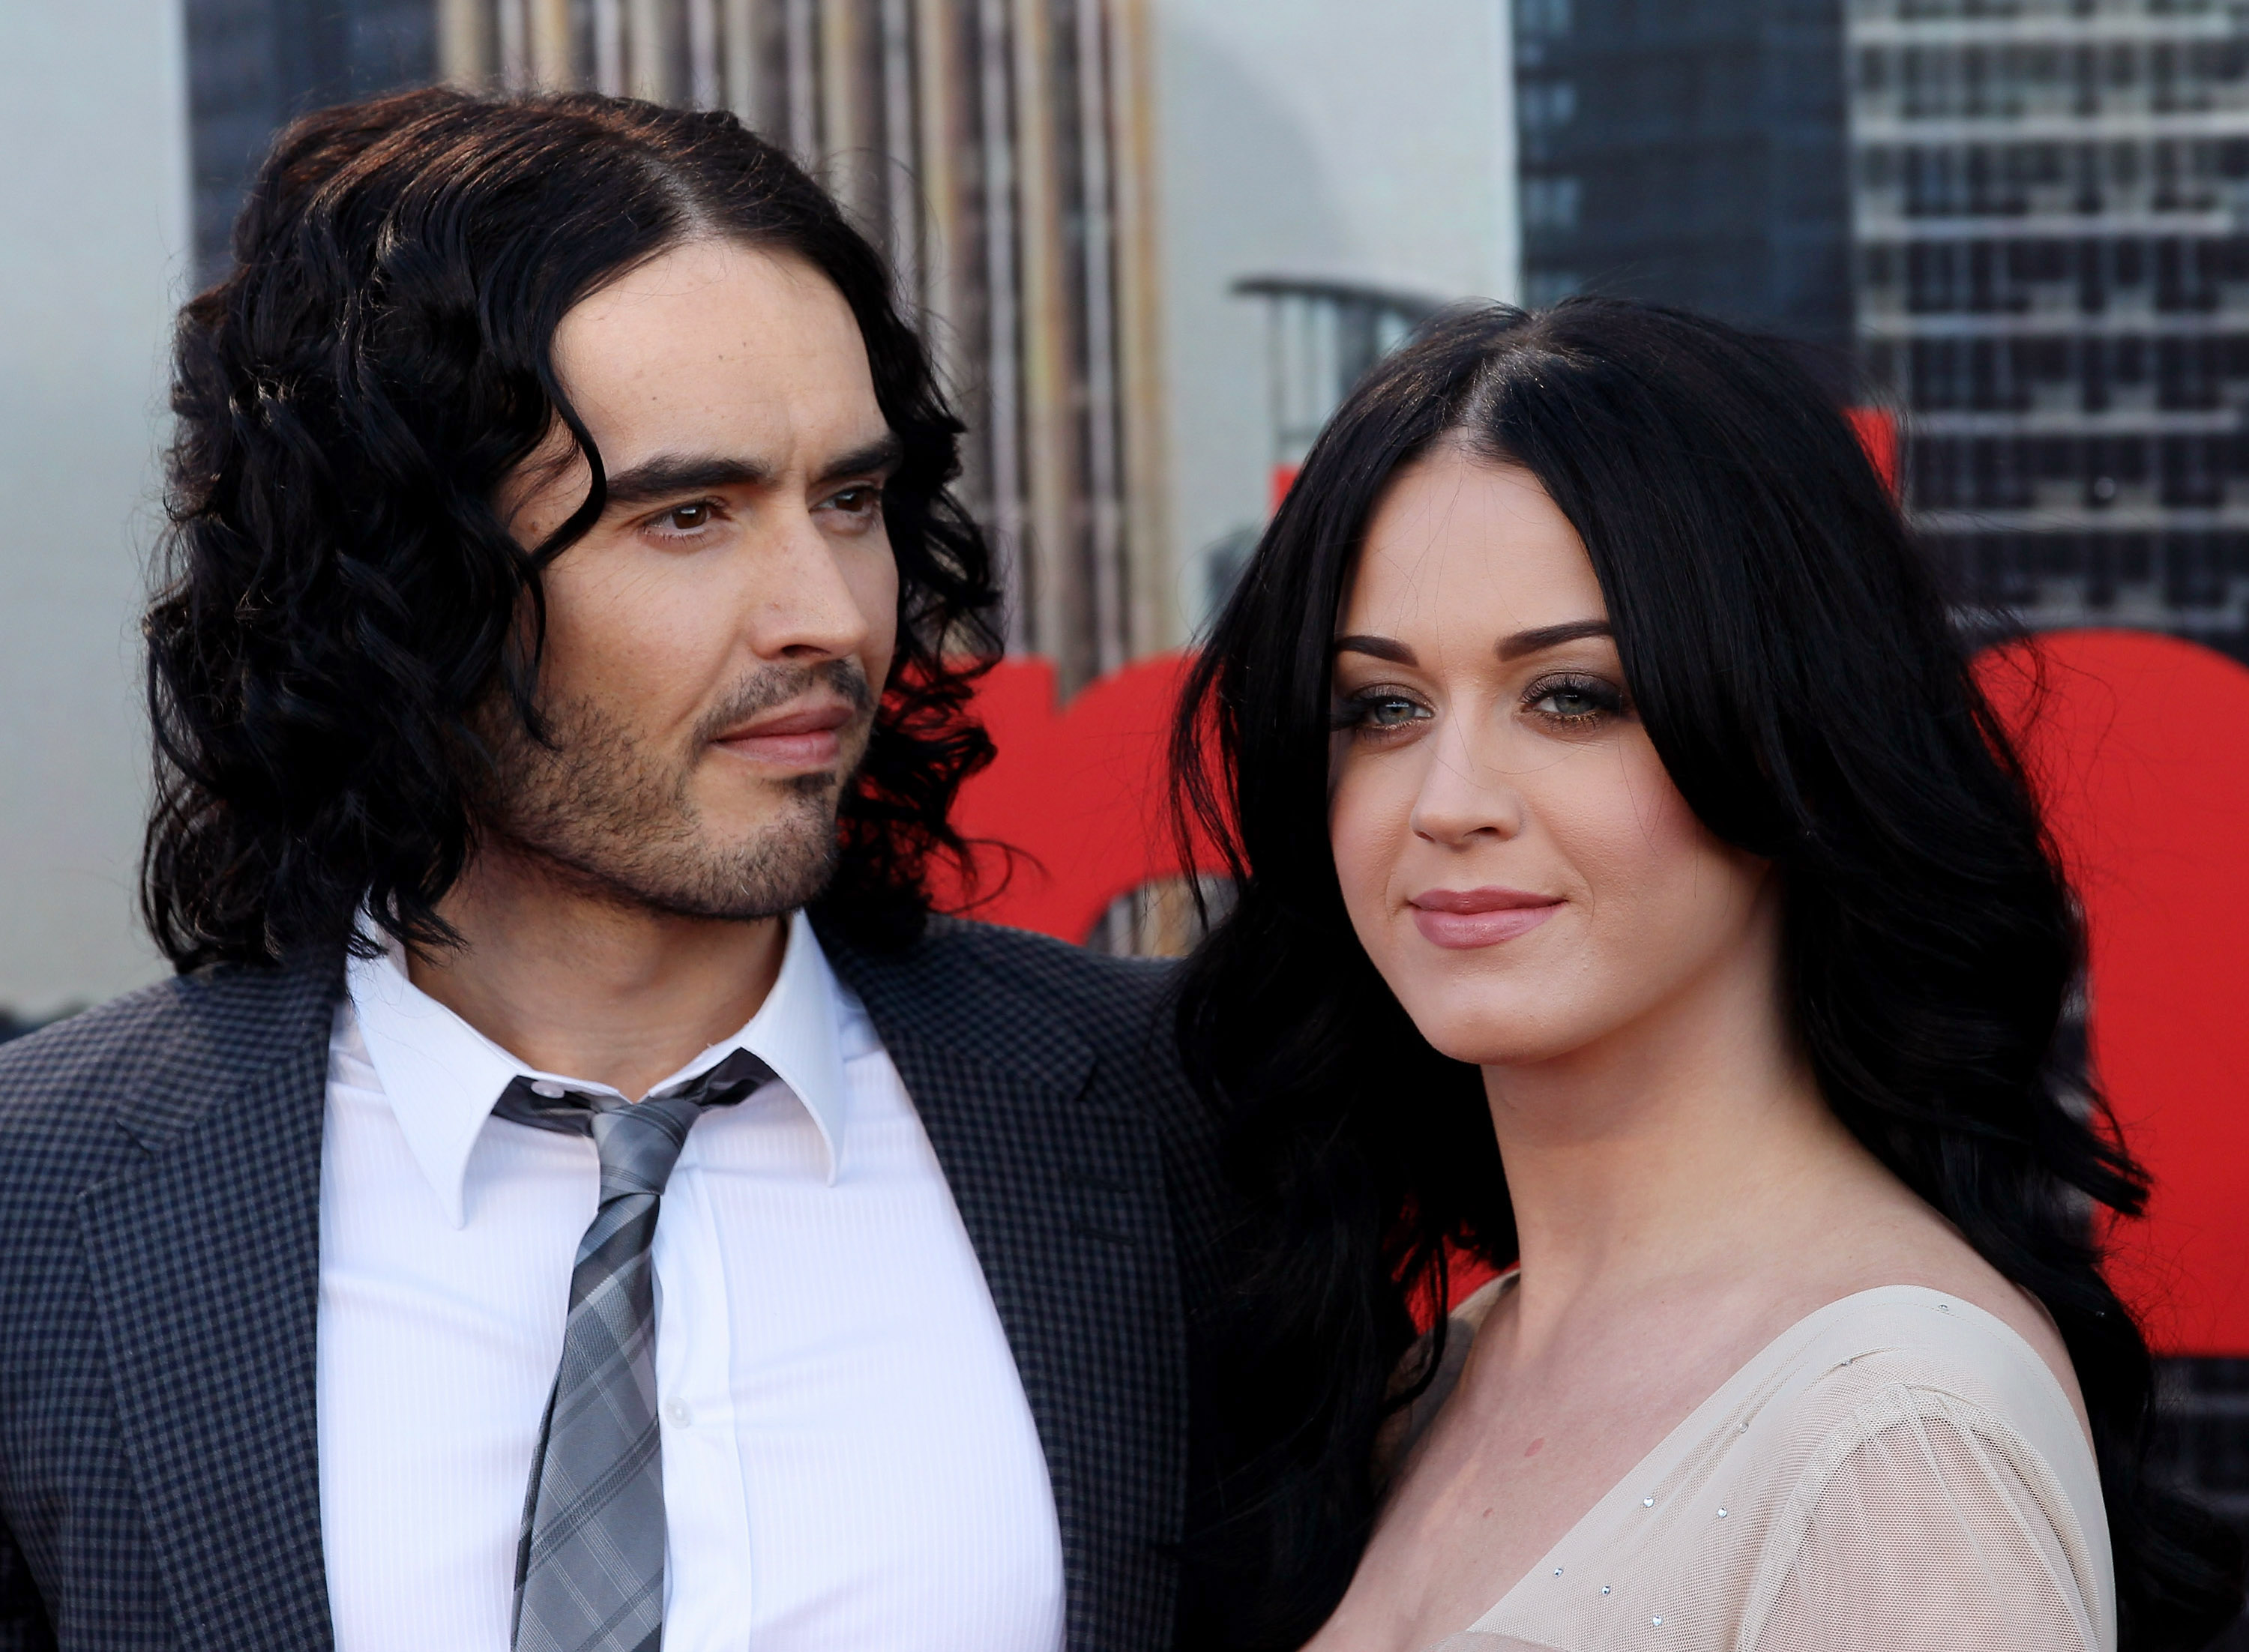 perry hindu singles While it's relatively common in hollywood for celebrity marriages to not last until death does them part, some hindu leaders are taking russell brand and katy perry's divorce very hard.